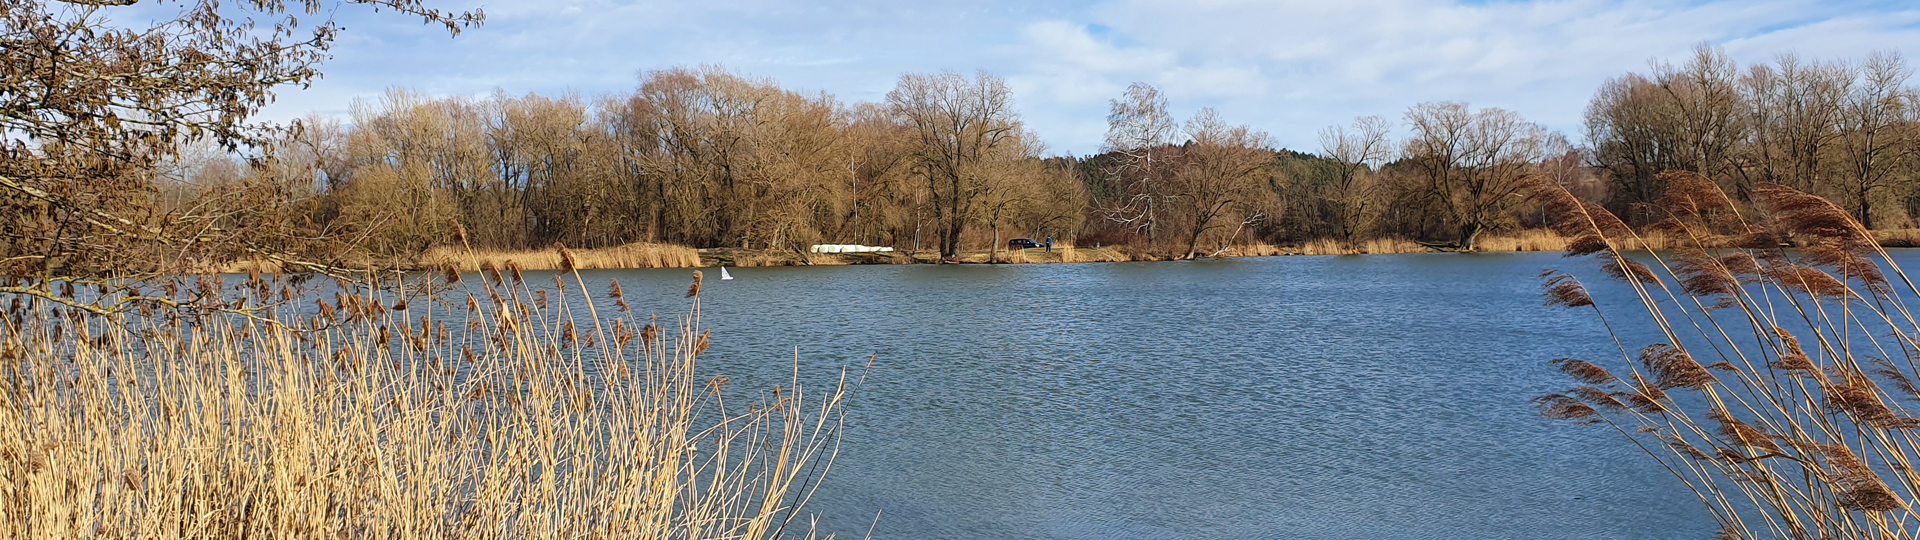 Allershausener See